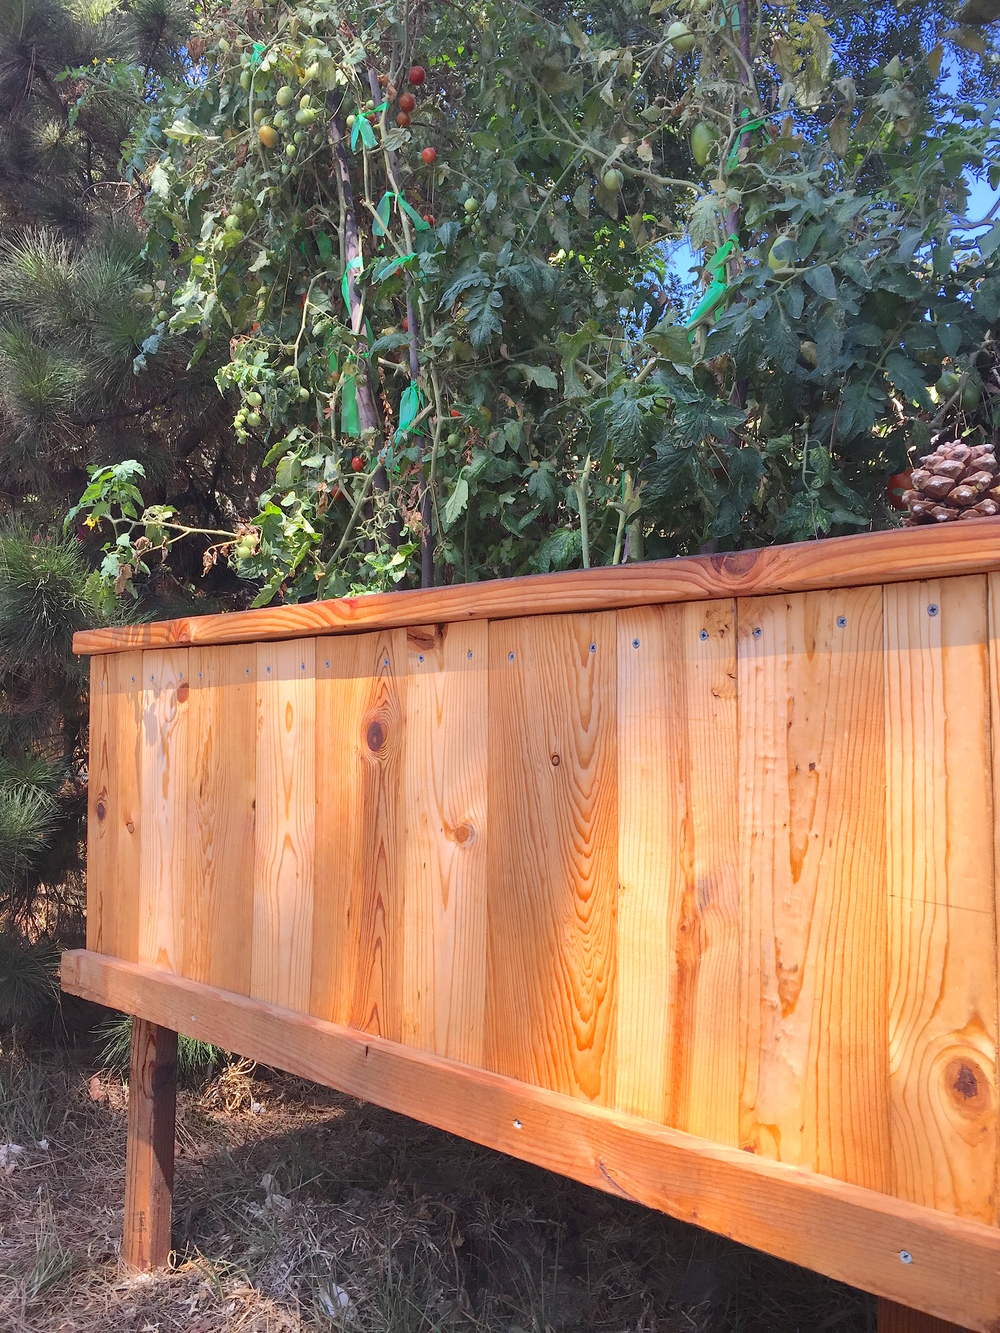 A raised garden bed I made this spring out of untreated salvaged lumber. I applied two coats of neem-cedar oil blend that was diluted with food-grade/cooking oil as an extender.